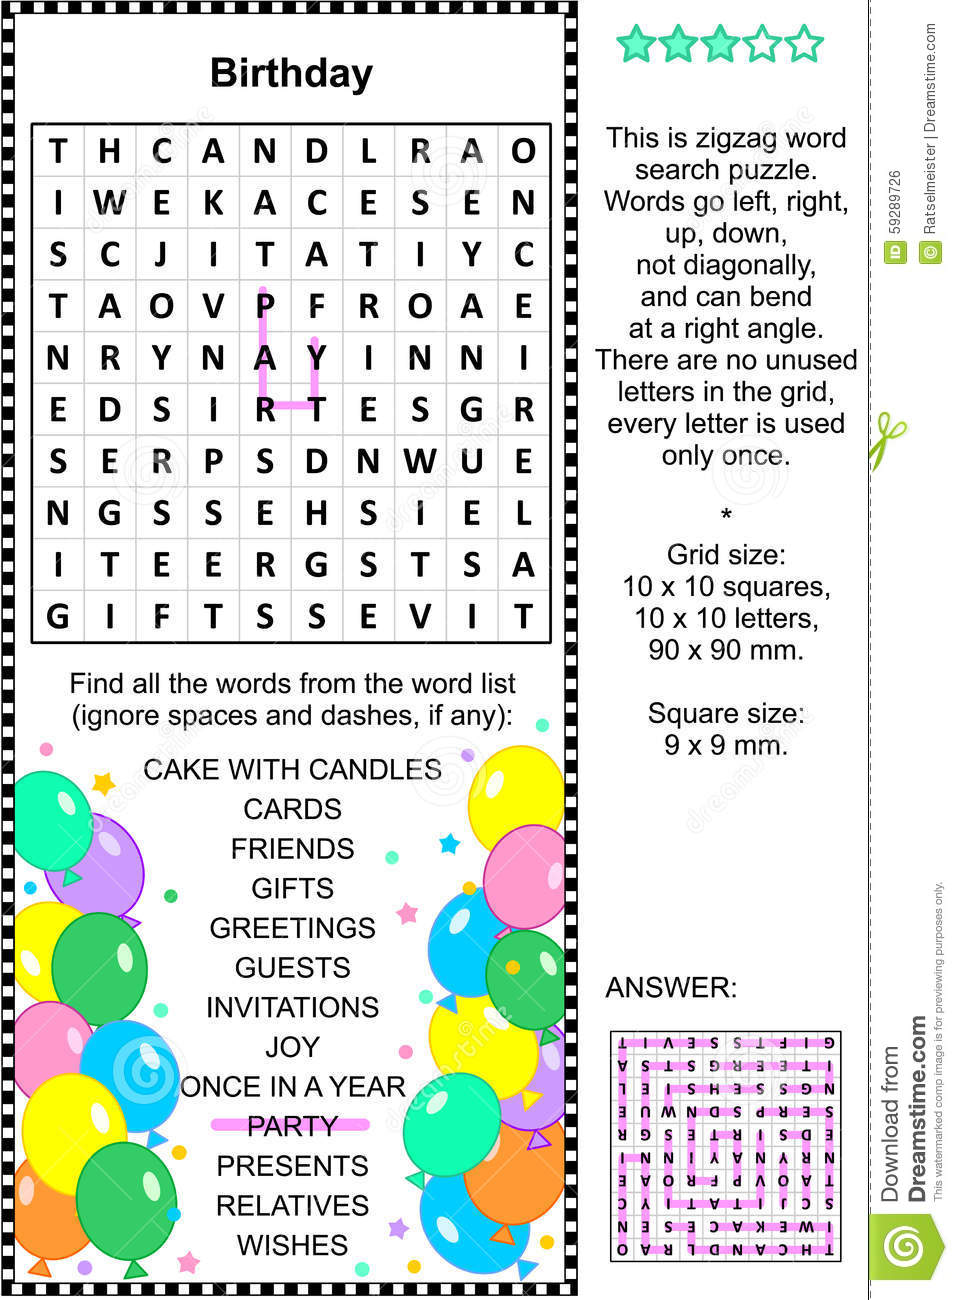 Birthday themed word search puzzle (english language). Answer included ...